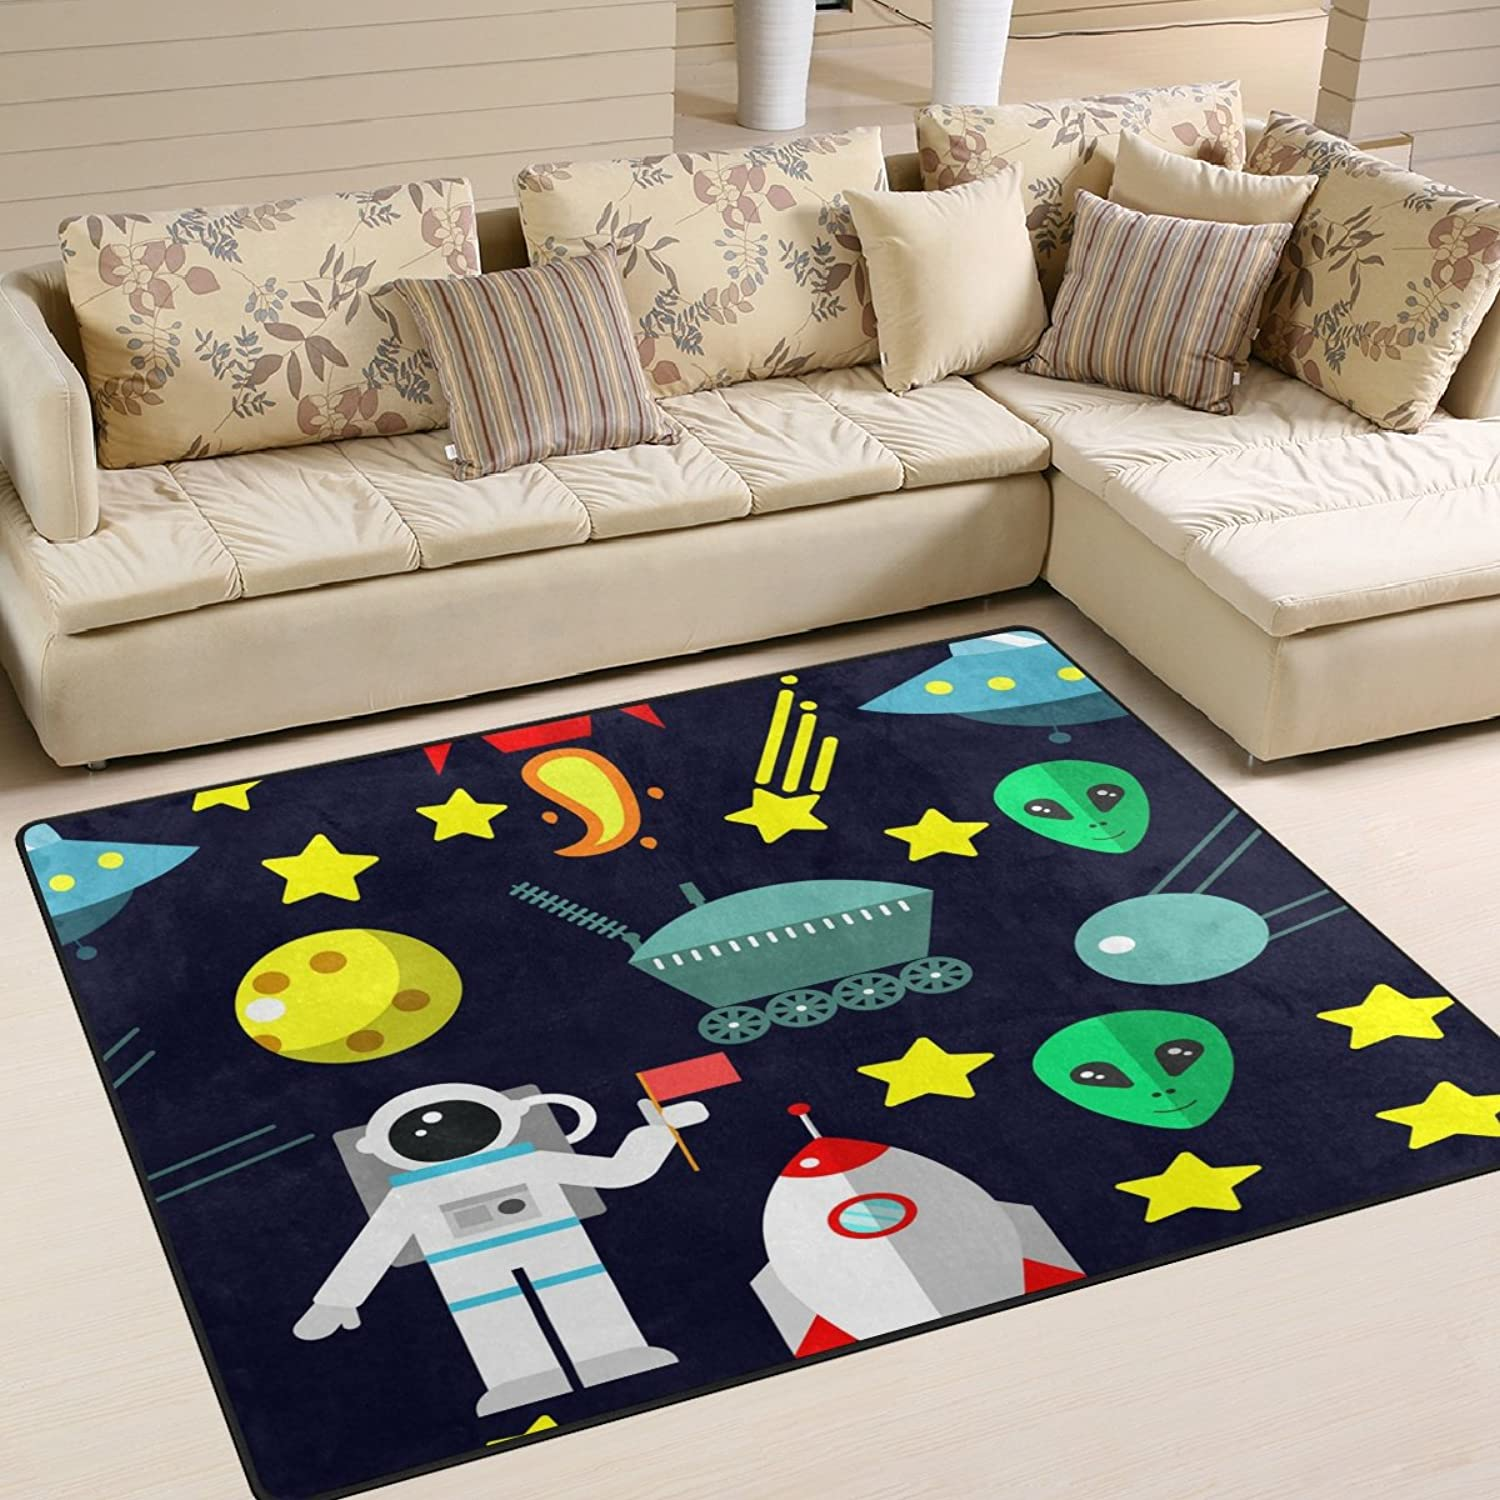 ALAZA Cartoon Space Rockets Comet Universe Star Area Rug Rugs for Living Room Bedroom 7' x 5'